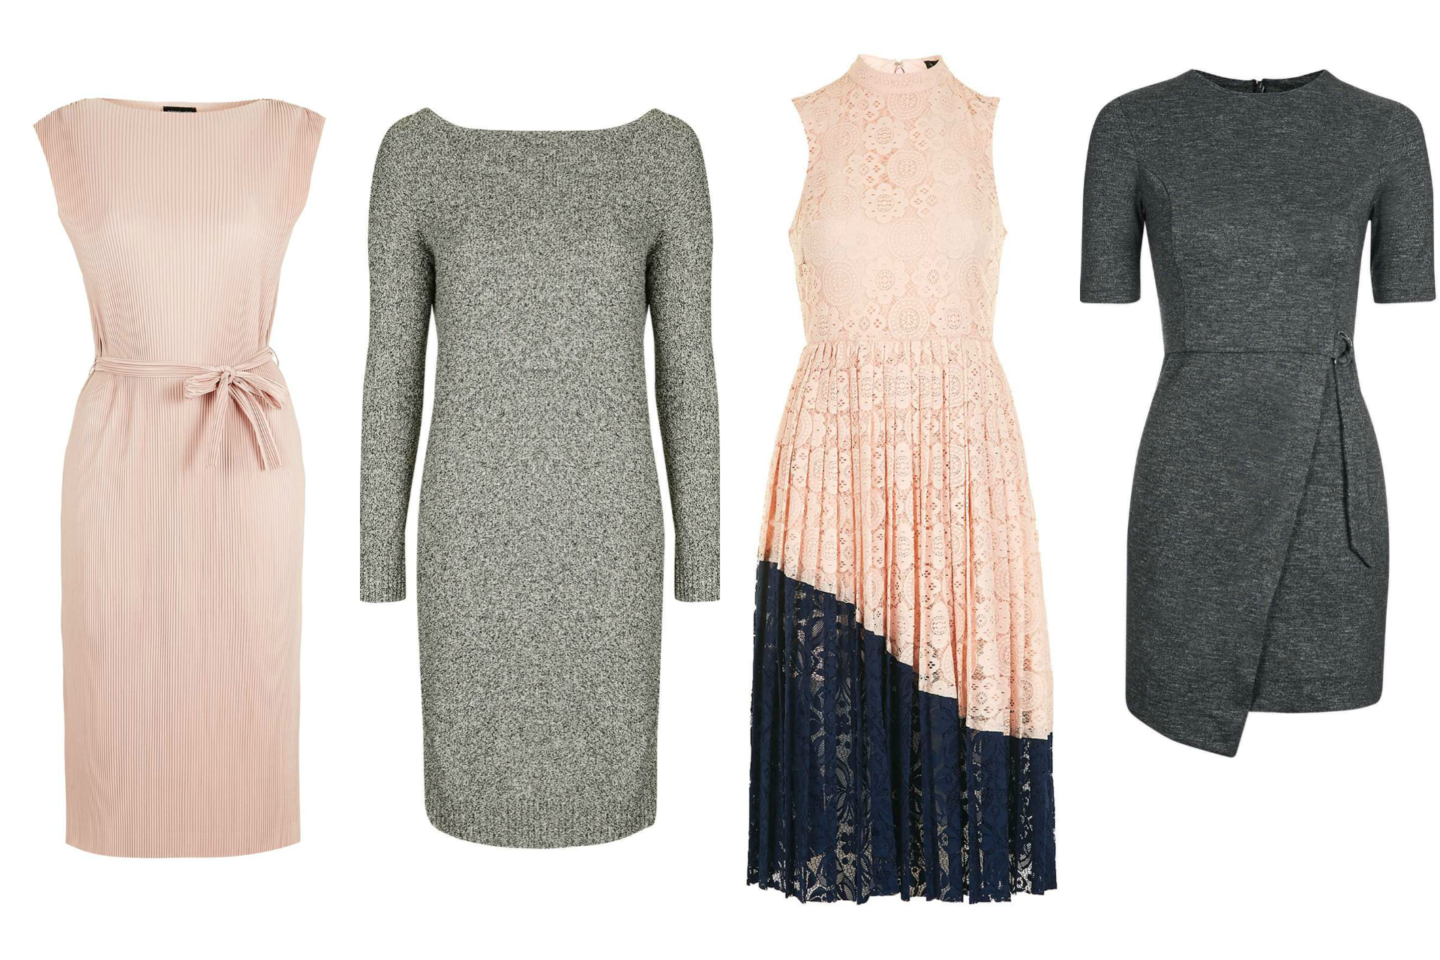 6 Topshop dresses you need in your wardrobe